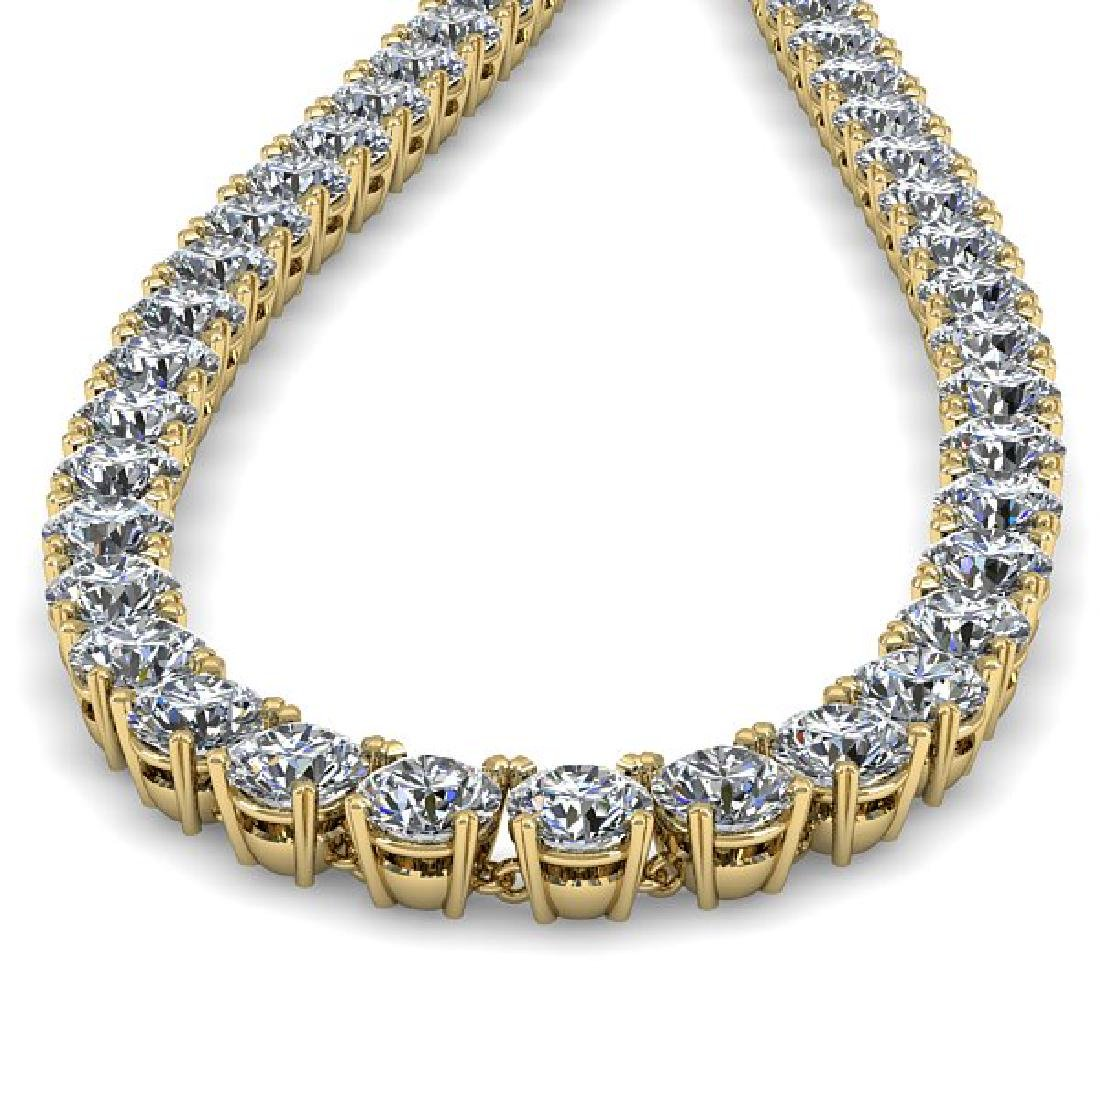 30 CTW Certified SI Diamond Necklace 14K Yellow Gold - 2